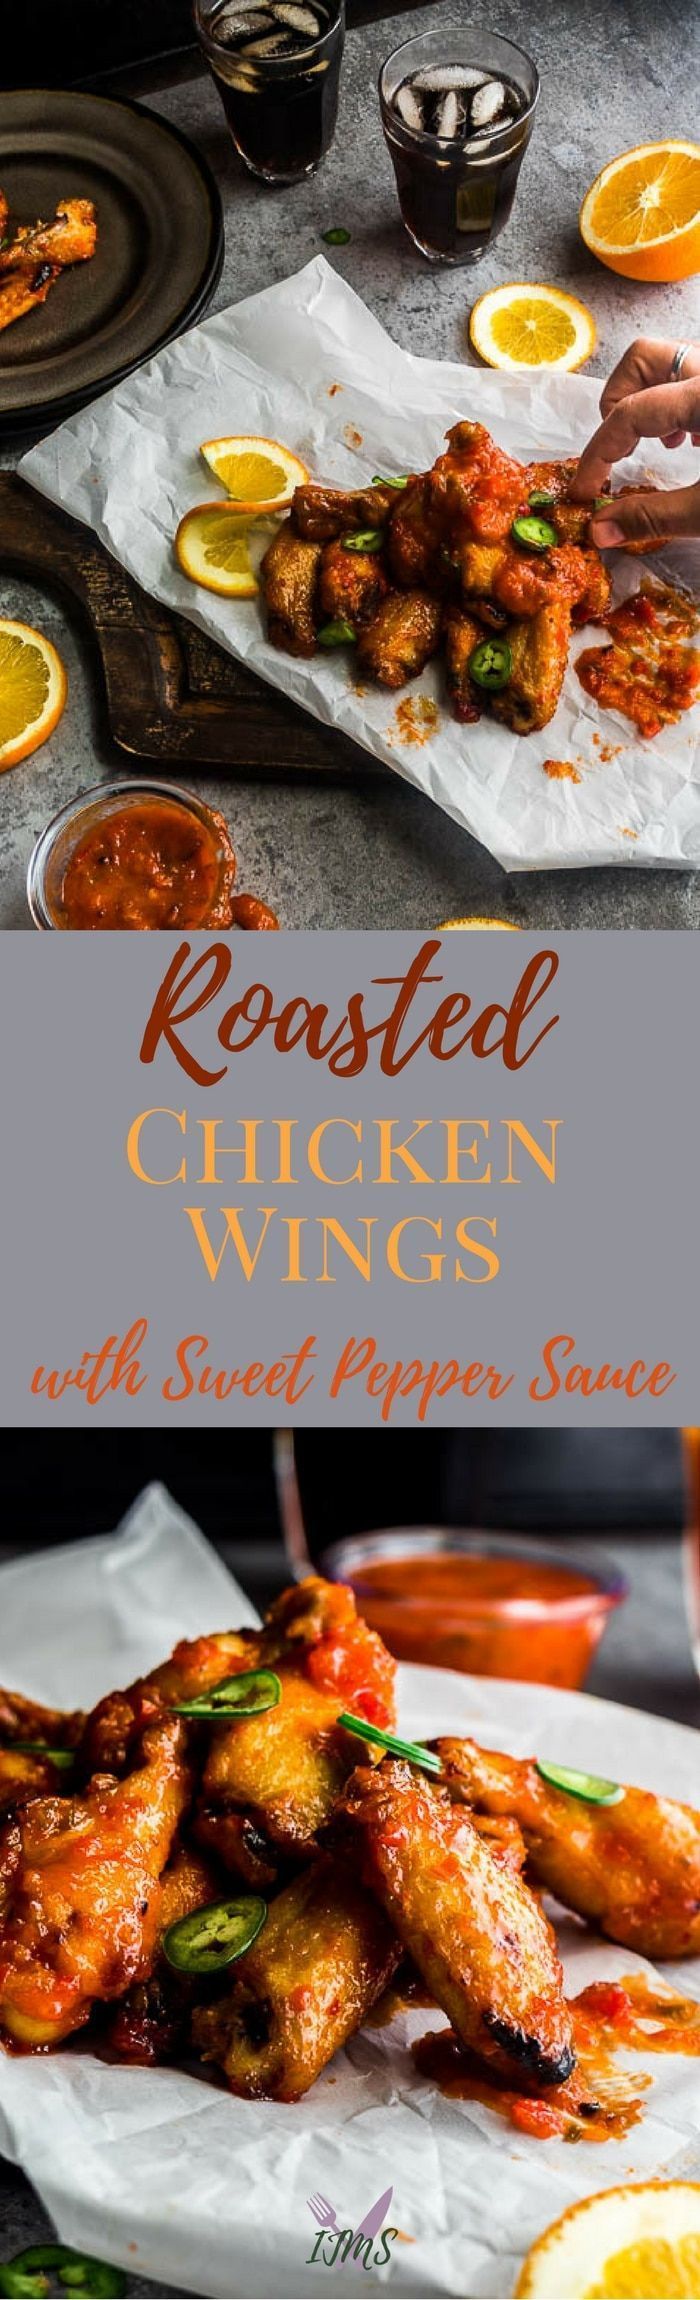 Roasted Chicken Wings are a great appetizer for a small family gathering or party; especially tossed in a sweet pepper sauce. Gourmia's Rotisserie Oven helps cooking chicken wings a cinch with it's features. via @ijustmakesandwi